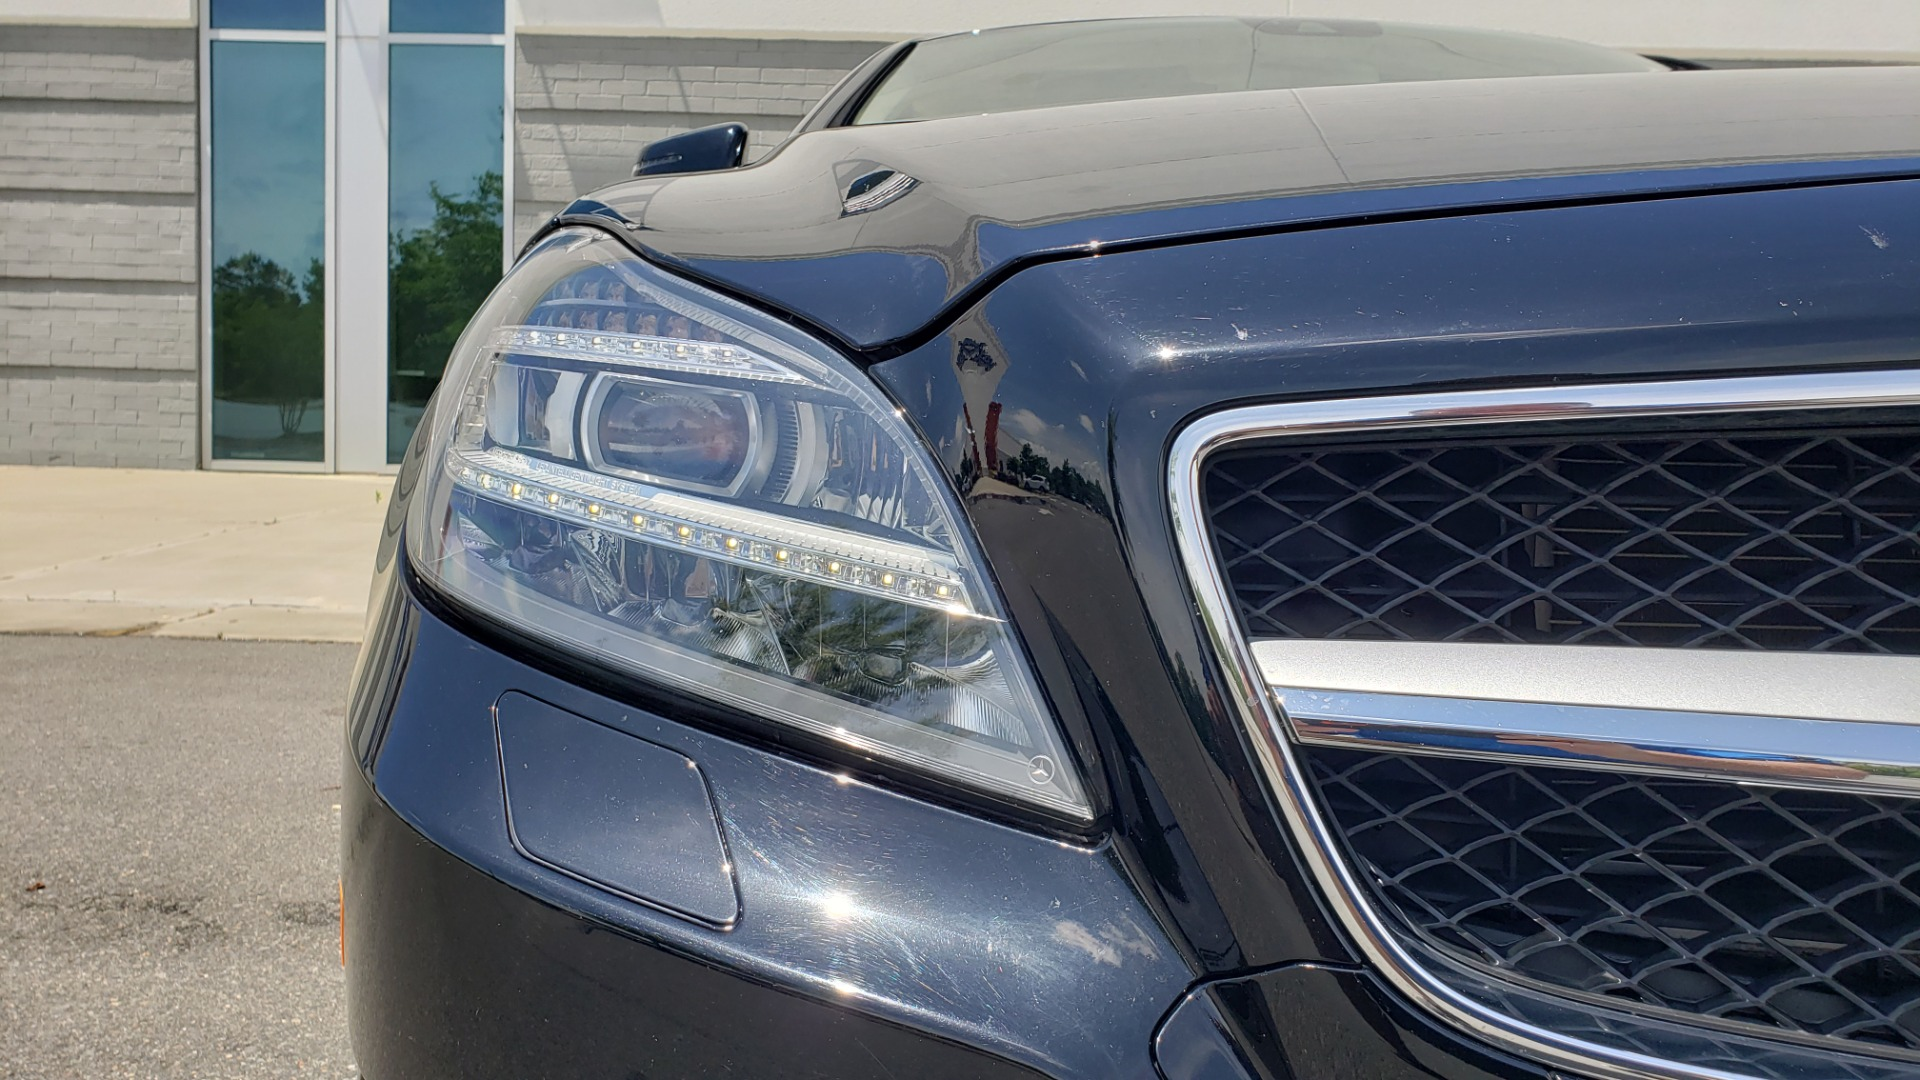 Used 2014 Mercedes-Benz CLS-CLASS CLS 550 PREMIUM / AMG SPORT WHLS / SUNROOF / LANE TRACK / PARKTRONIC for sale Sold at Formula Imports in Charlotte NC 28227 24